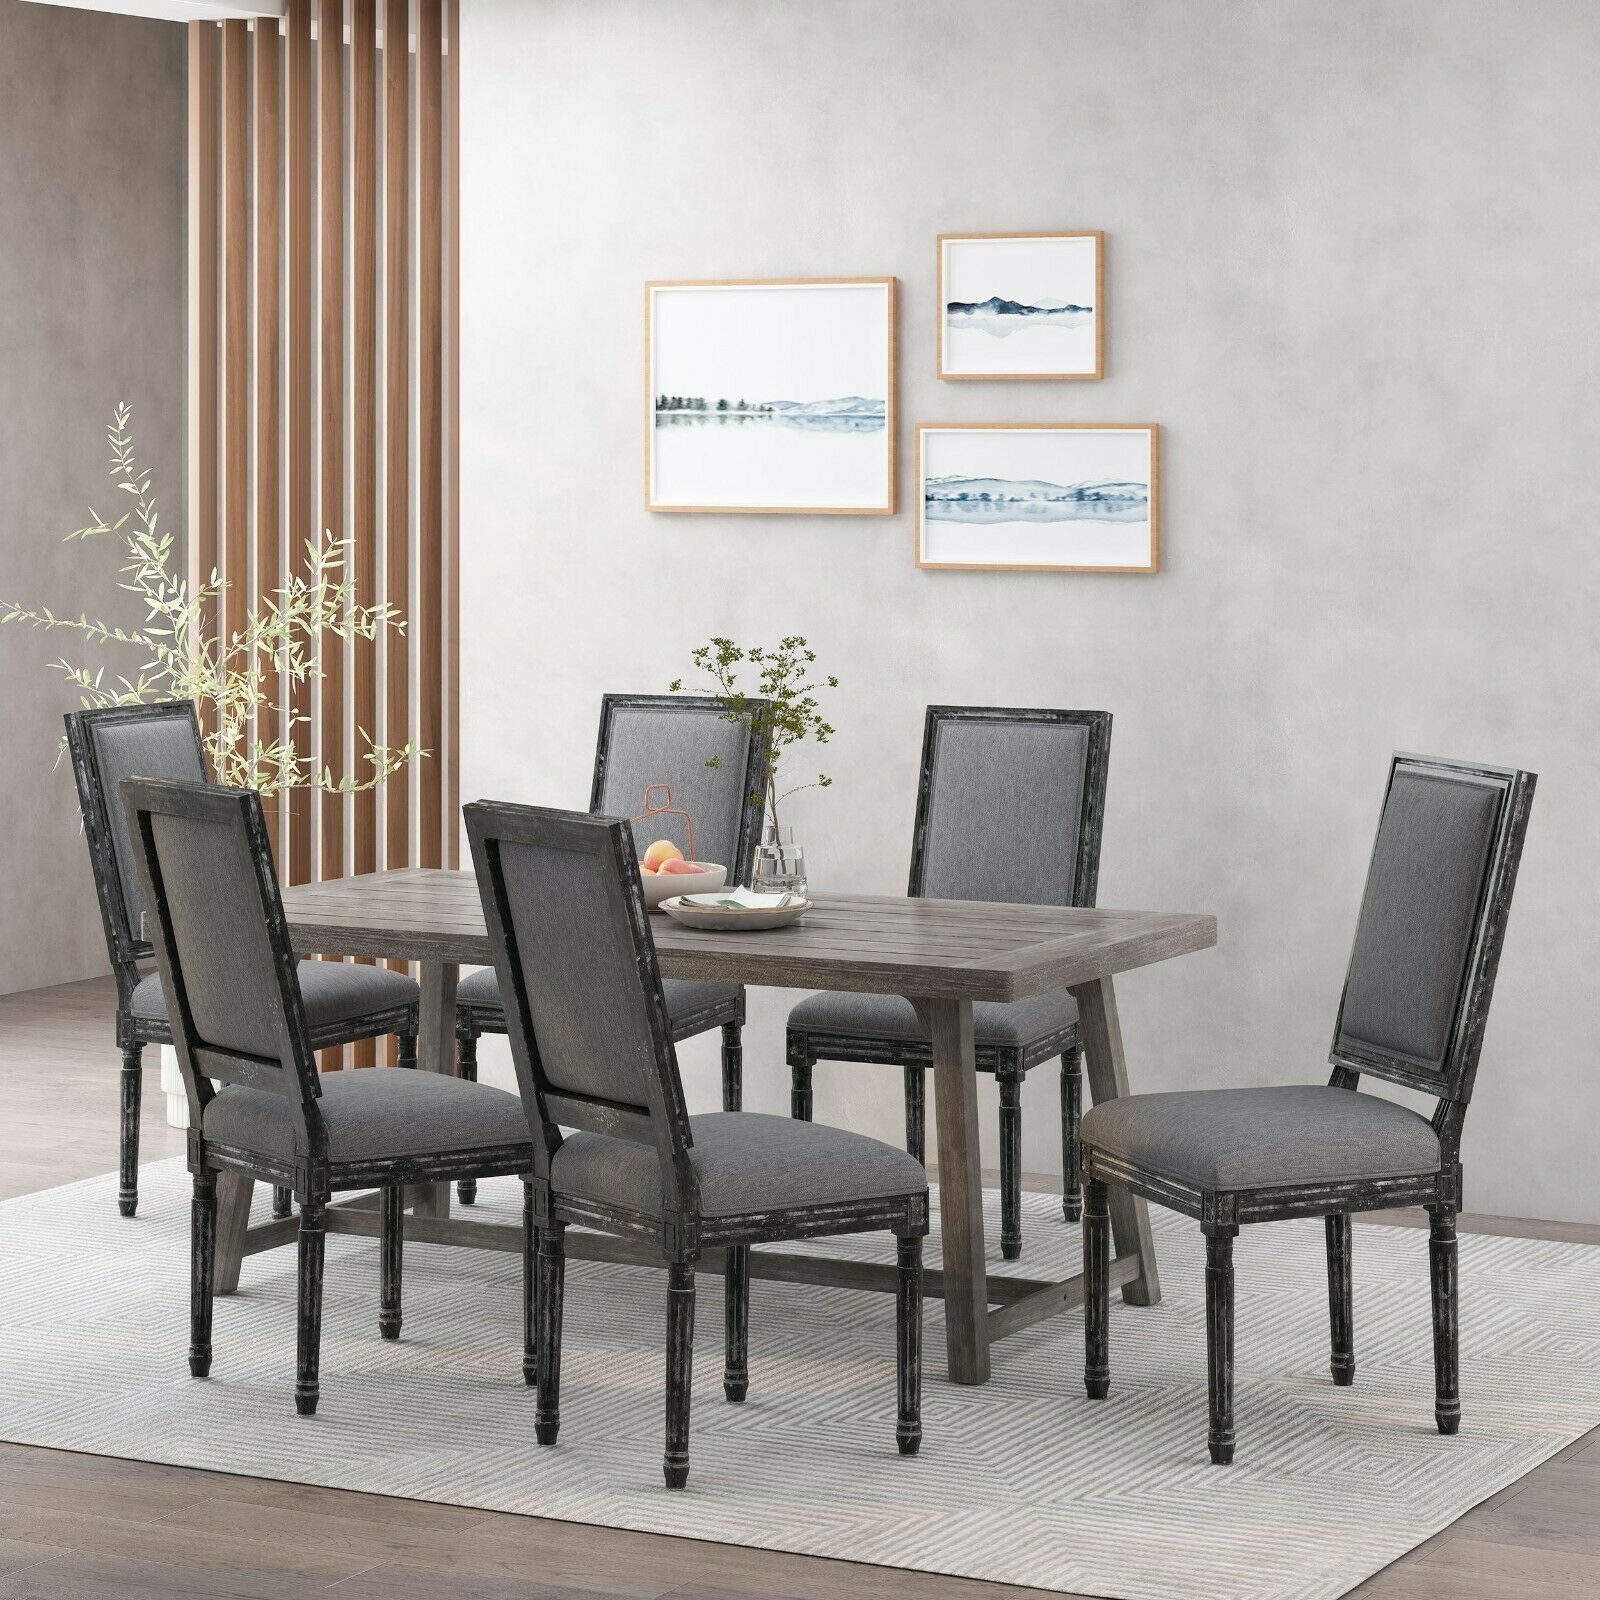 Amy French Country Wood Upholstered Dining Chair (Set of 6) Chairs